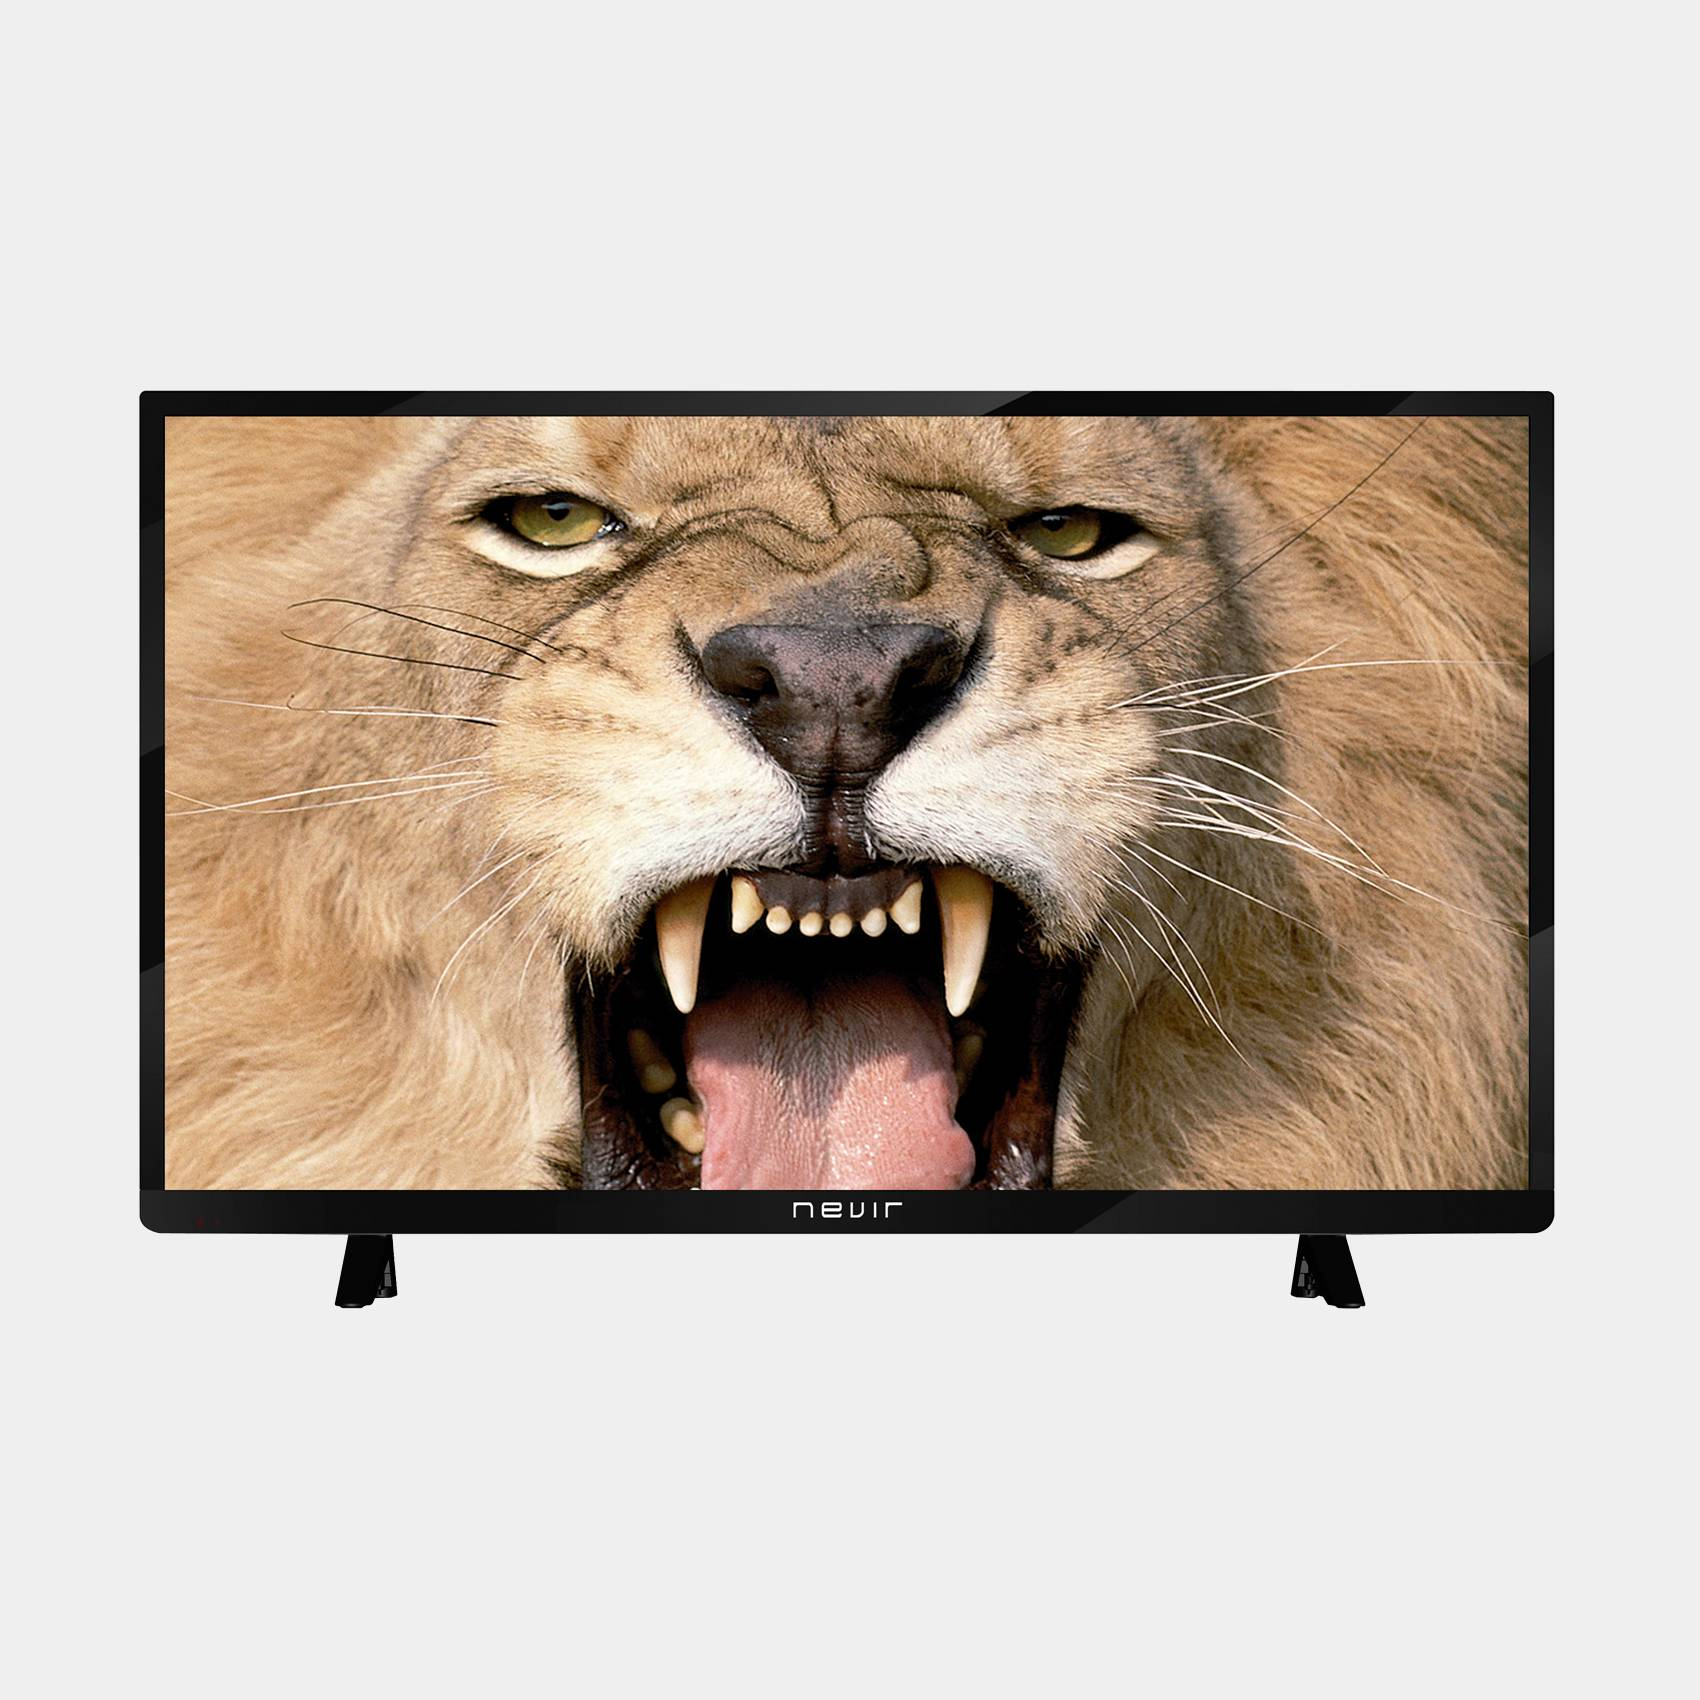 Nevir Nvr-7408-28hd-n televisor HD Ready con time shift